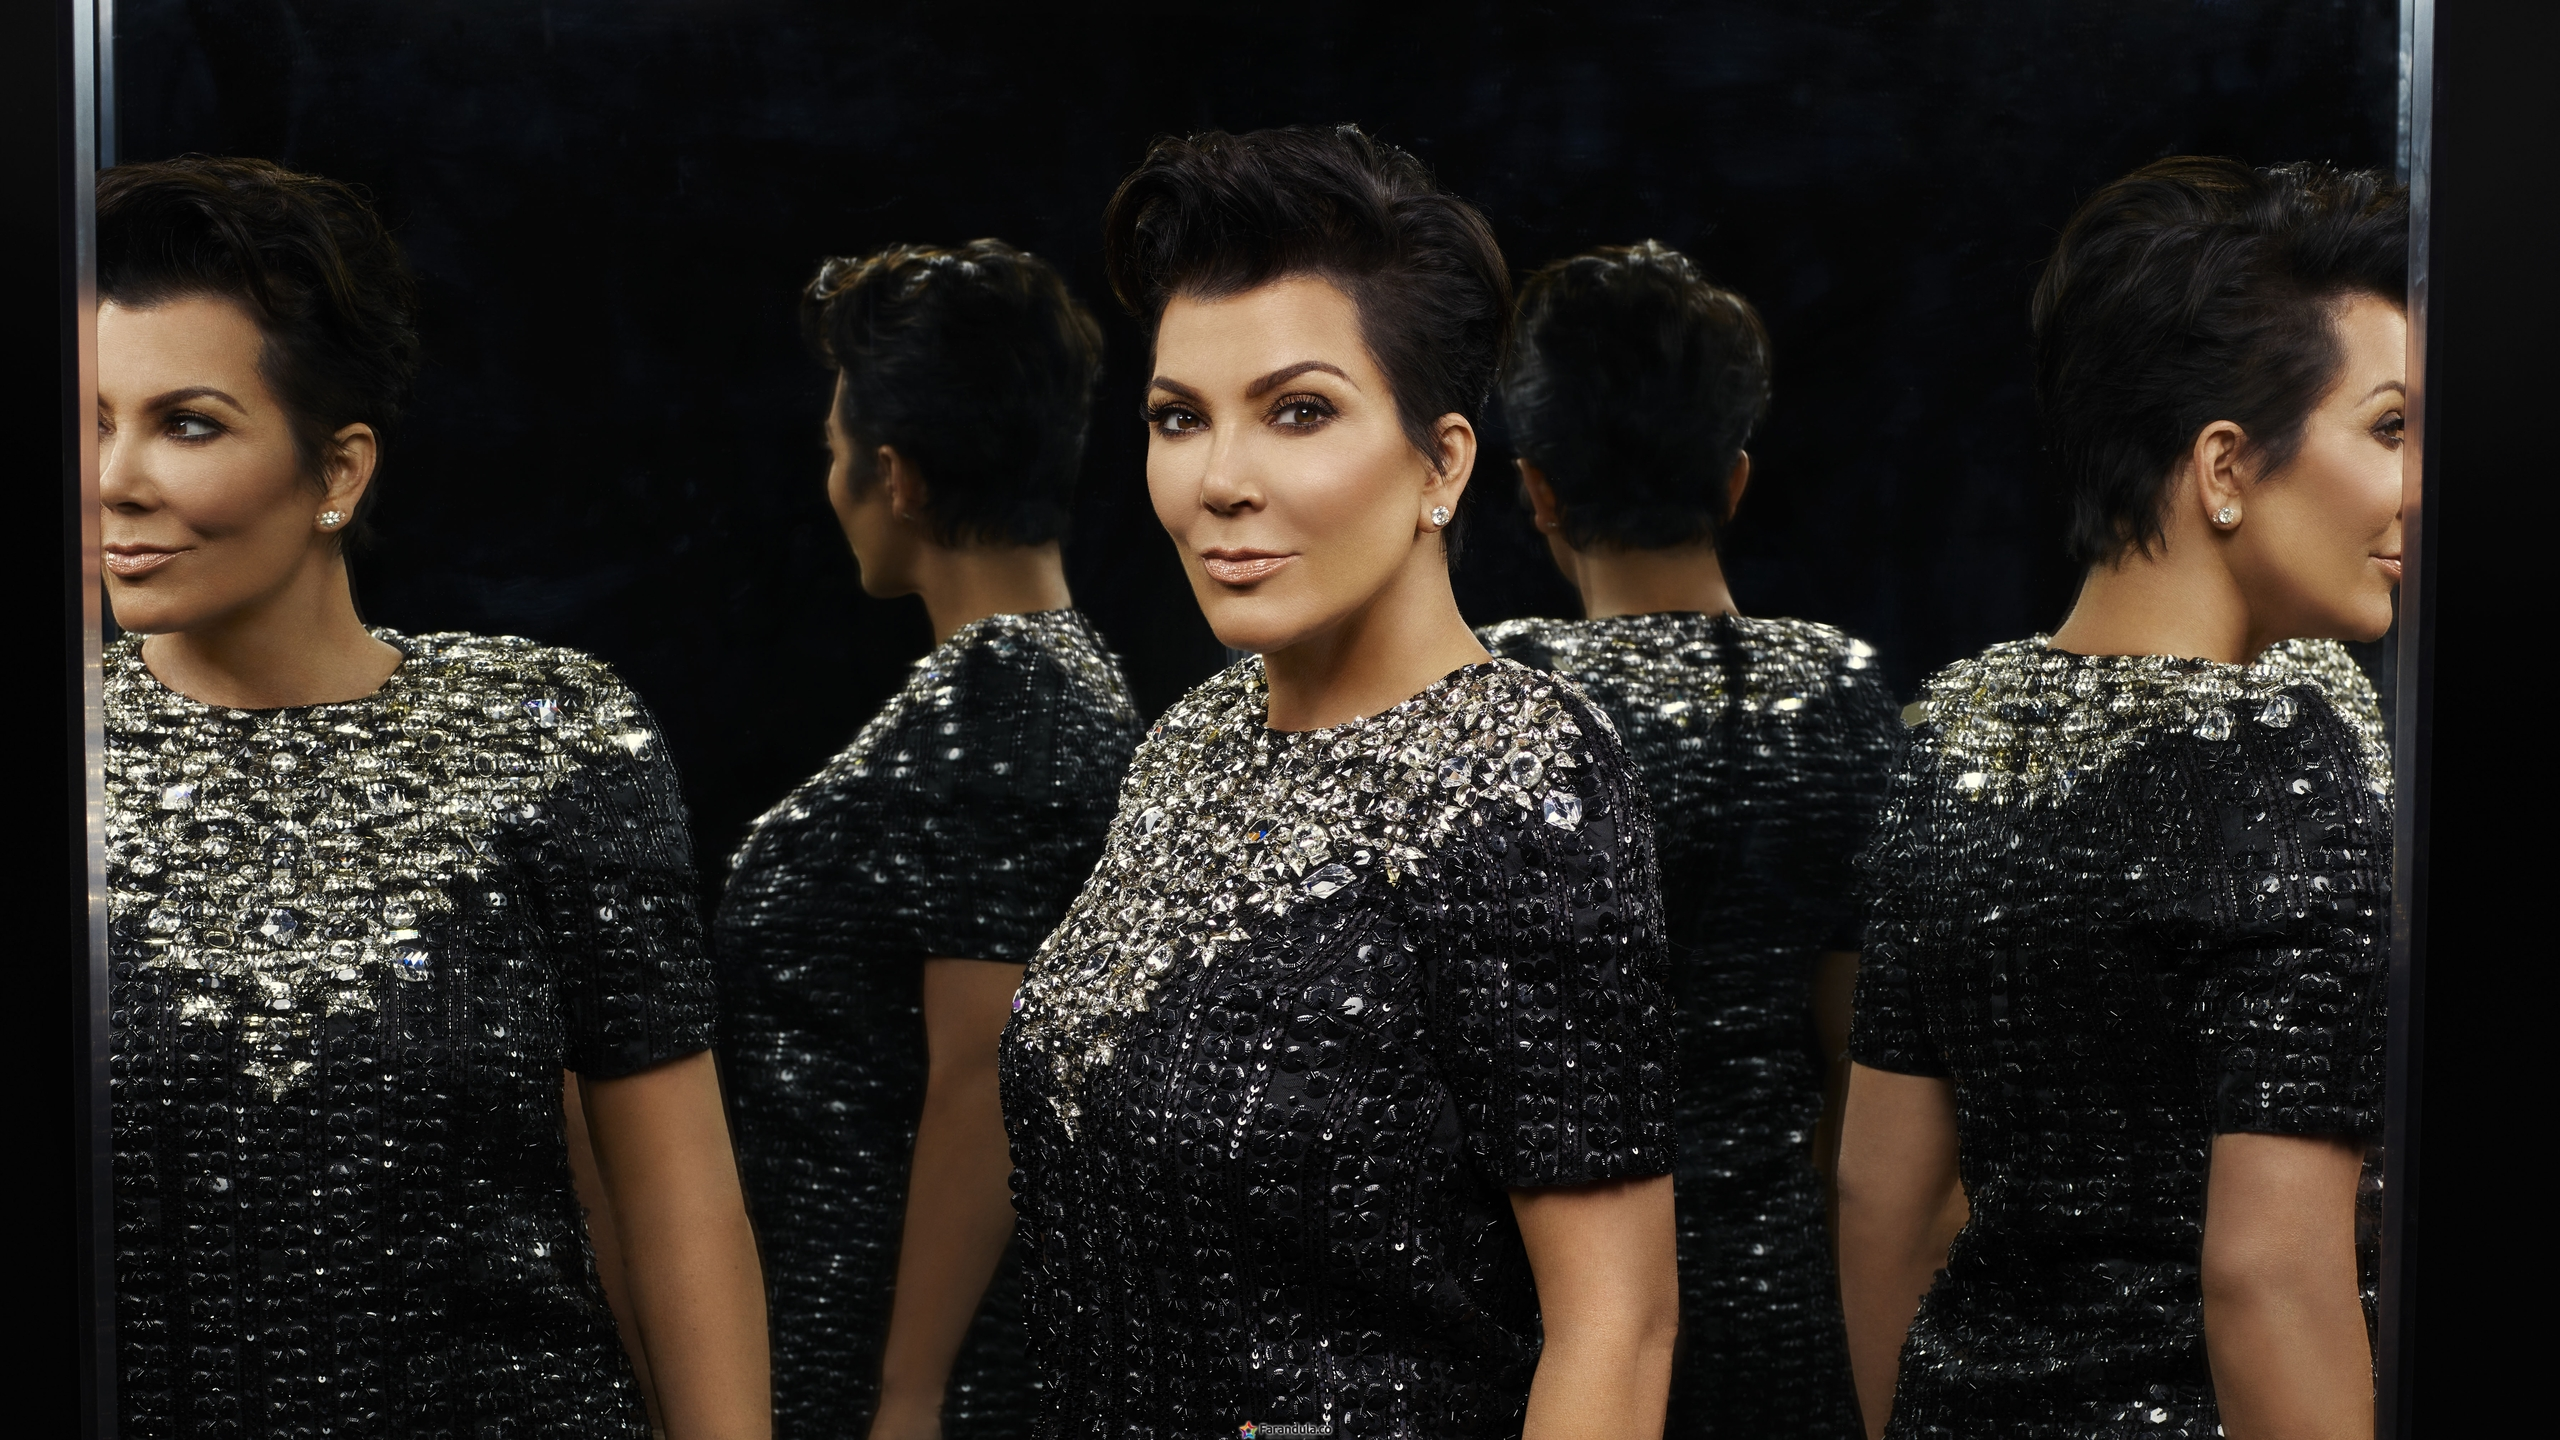 kris-jenner-keeping-up-with-the-kardashians-season-14-5k-te.jpg